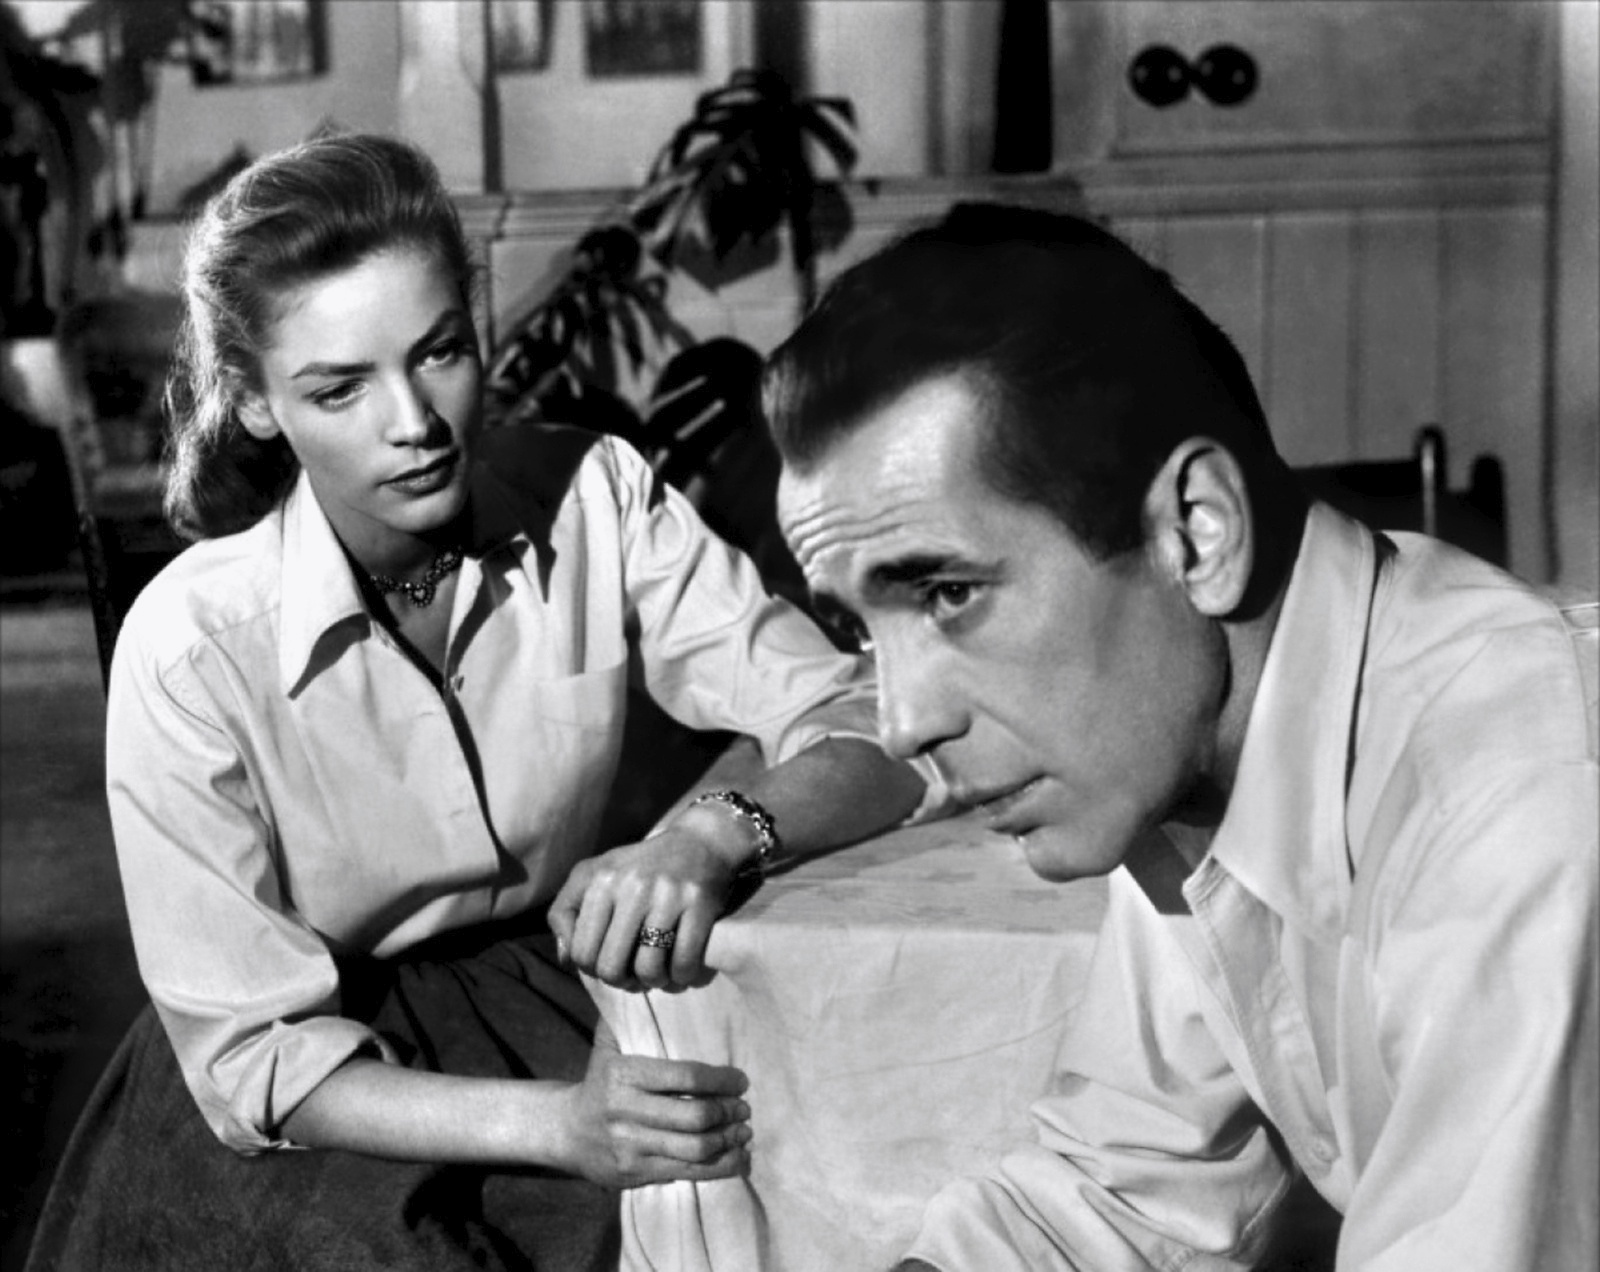 Bacall moving in Bogies direction without any cold weather to propel her.